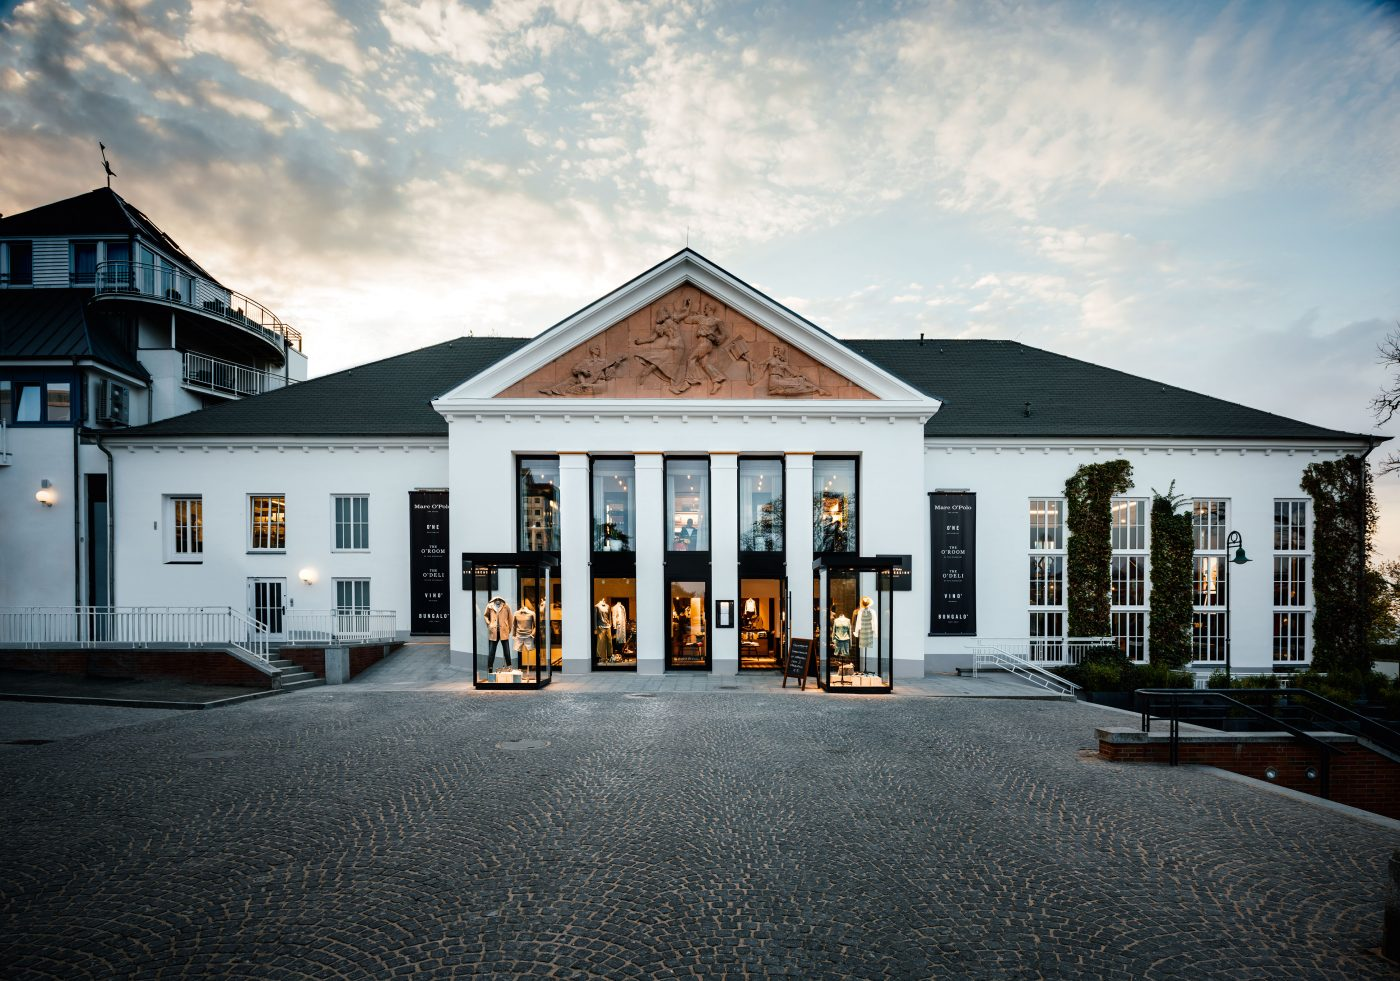 Exterior view of the Marc O'Polo beach casino in Herigsdorf on the island of Usedom